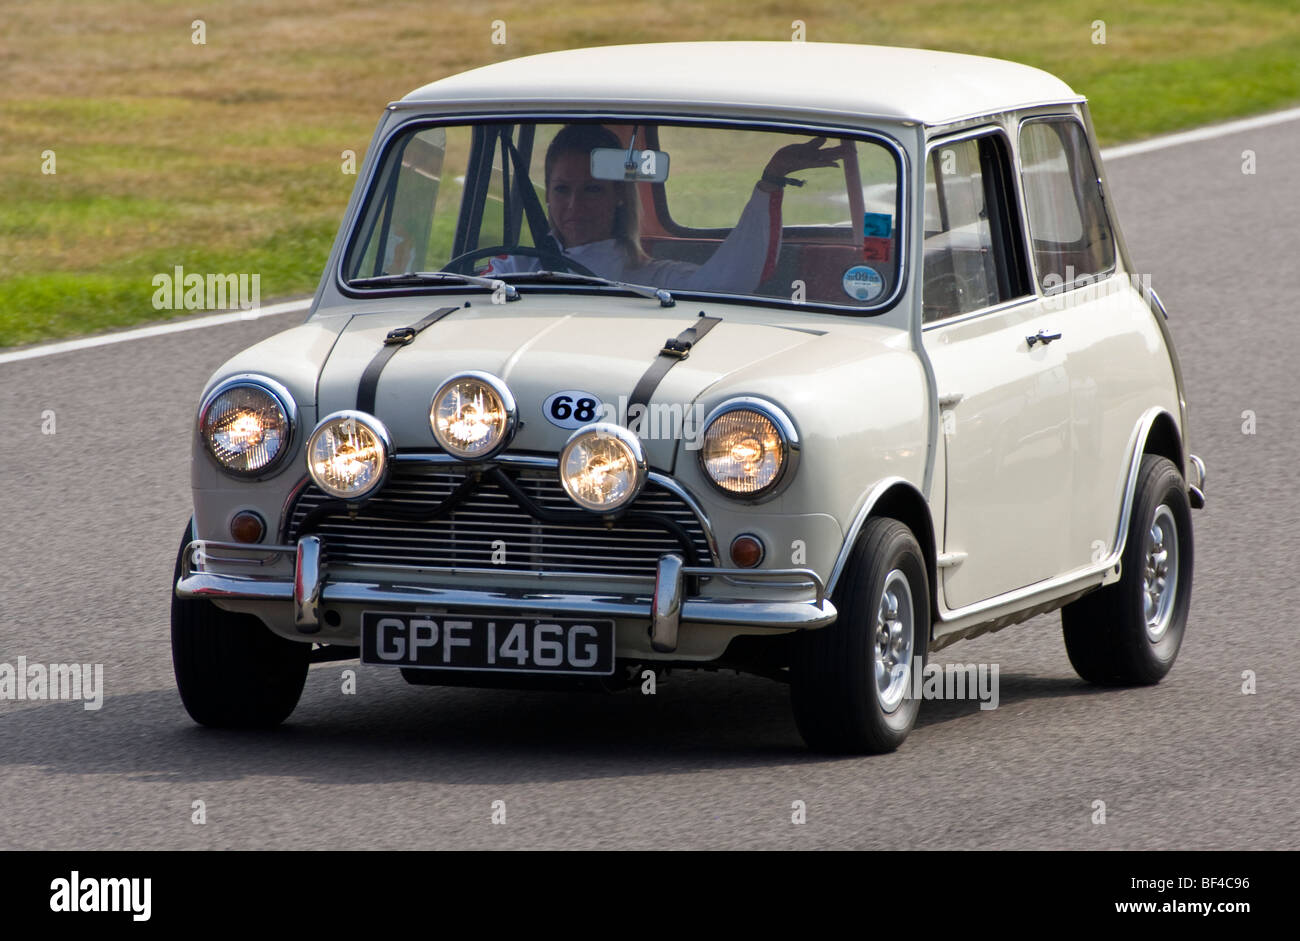 1969 Austin Mini Cooper S Which Appeared In The Movie The Italian